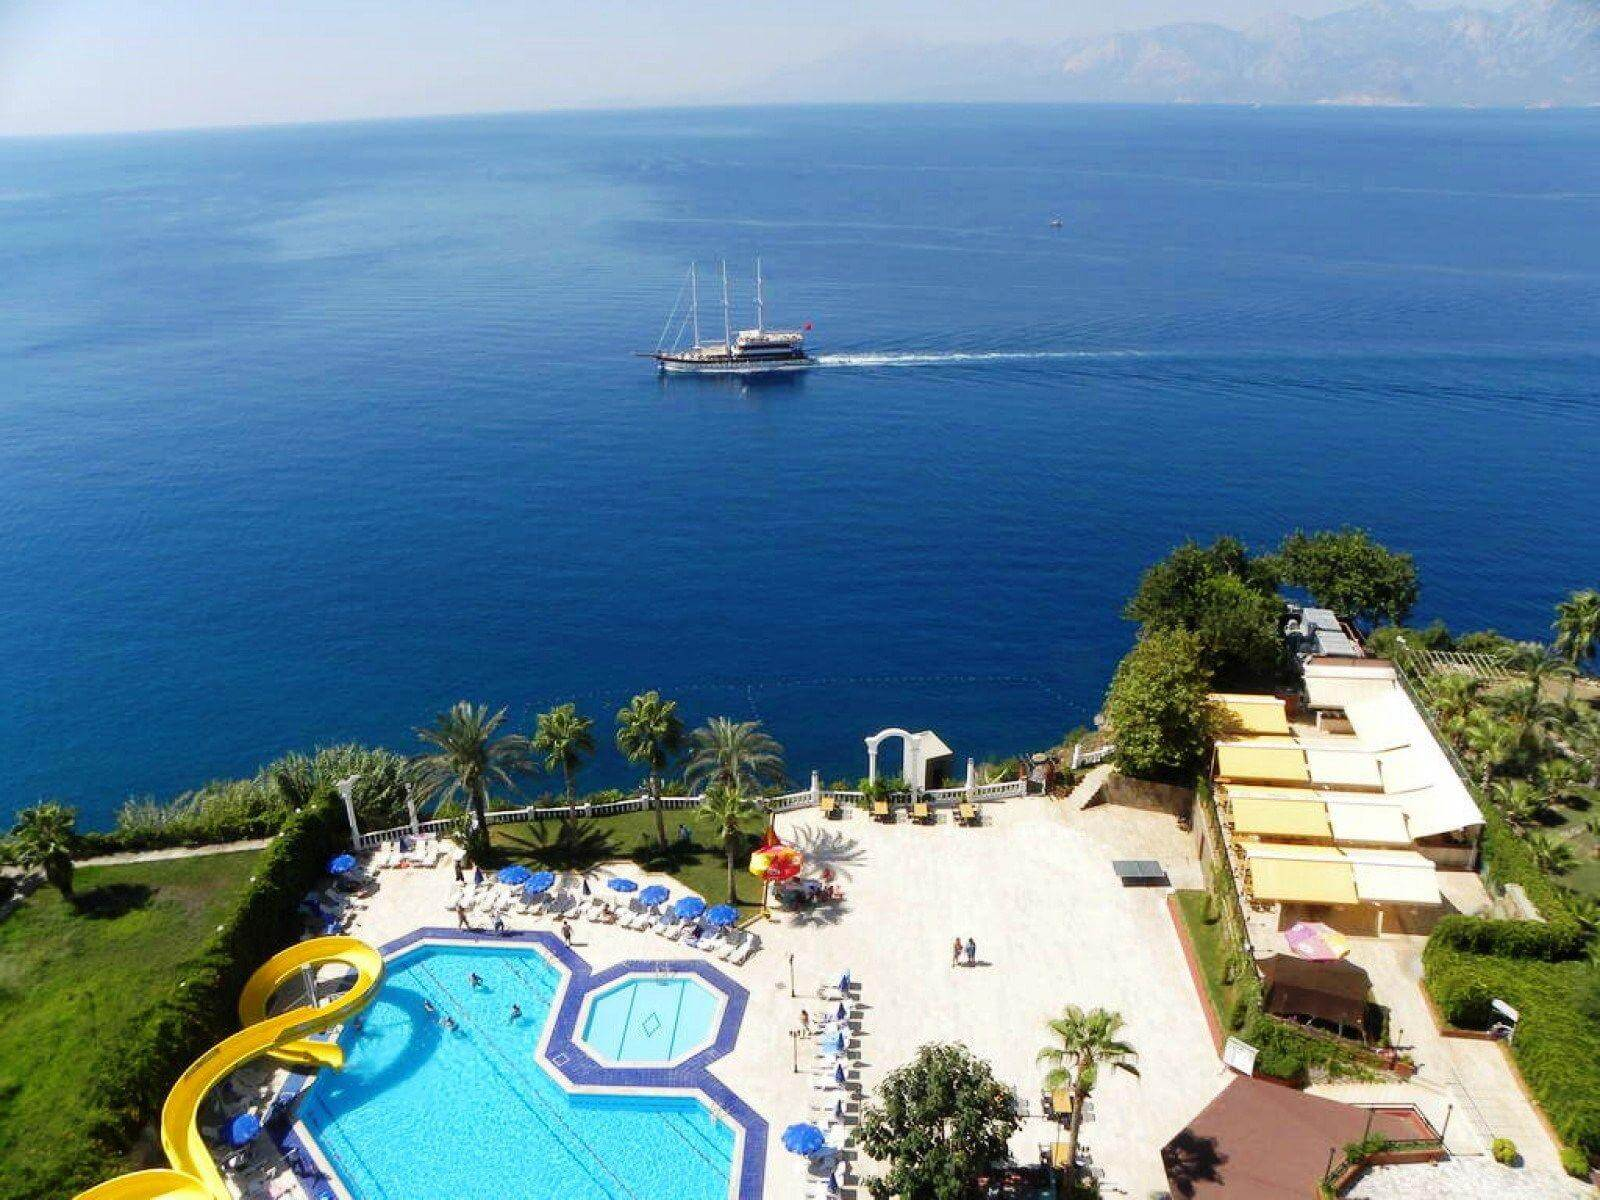 07 Days Turkey Luxurious Holiday Travel & Tour Package